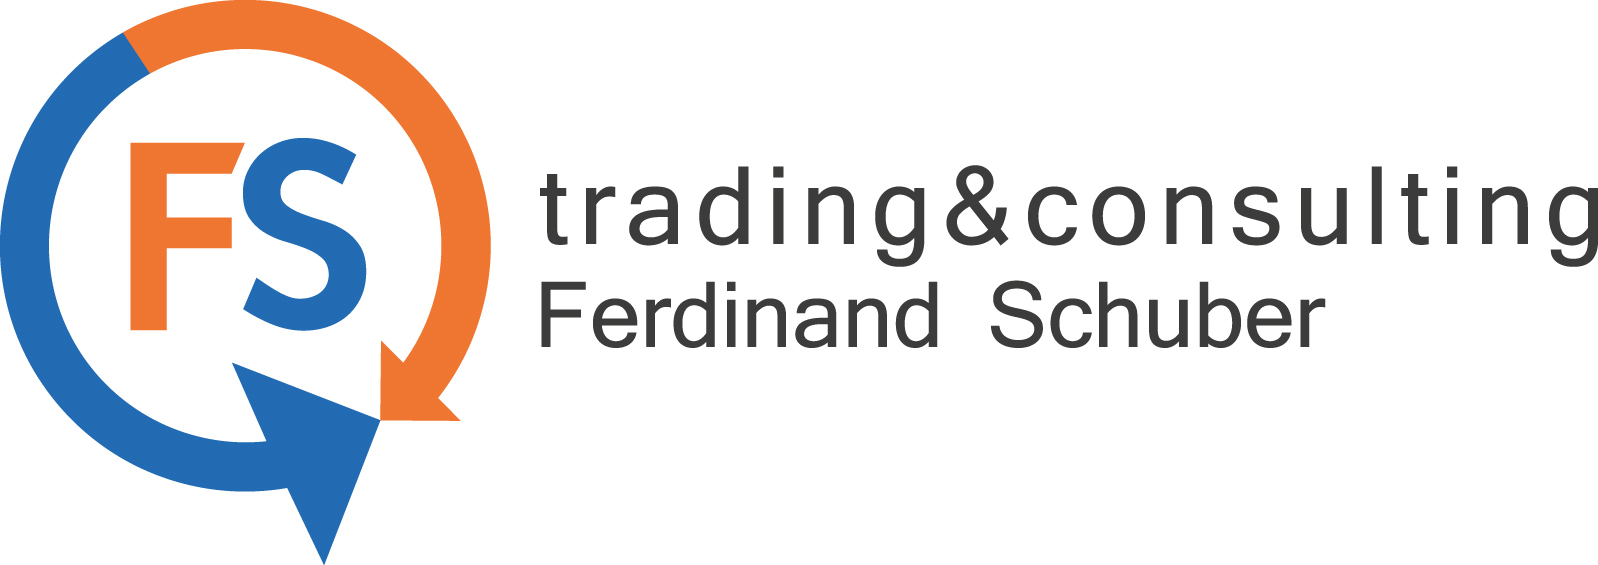 FS_TRADING&CONSULTING